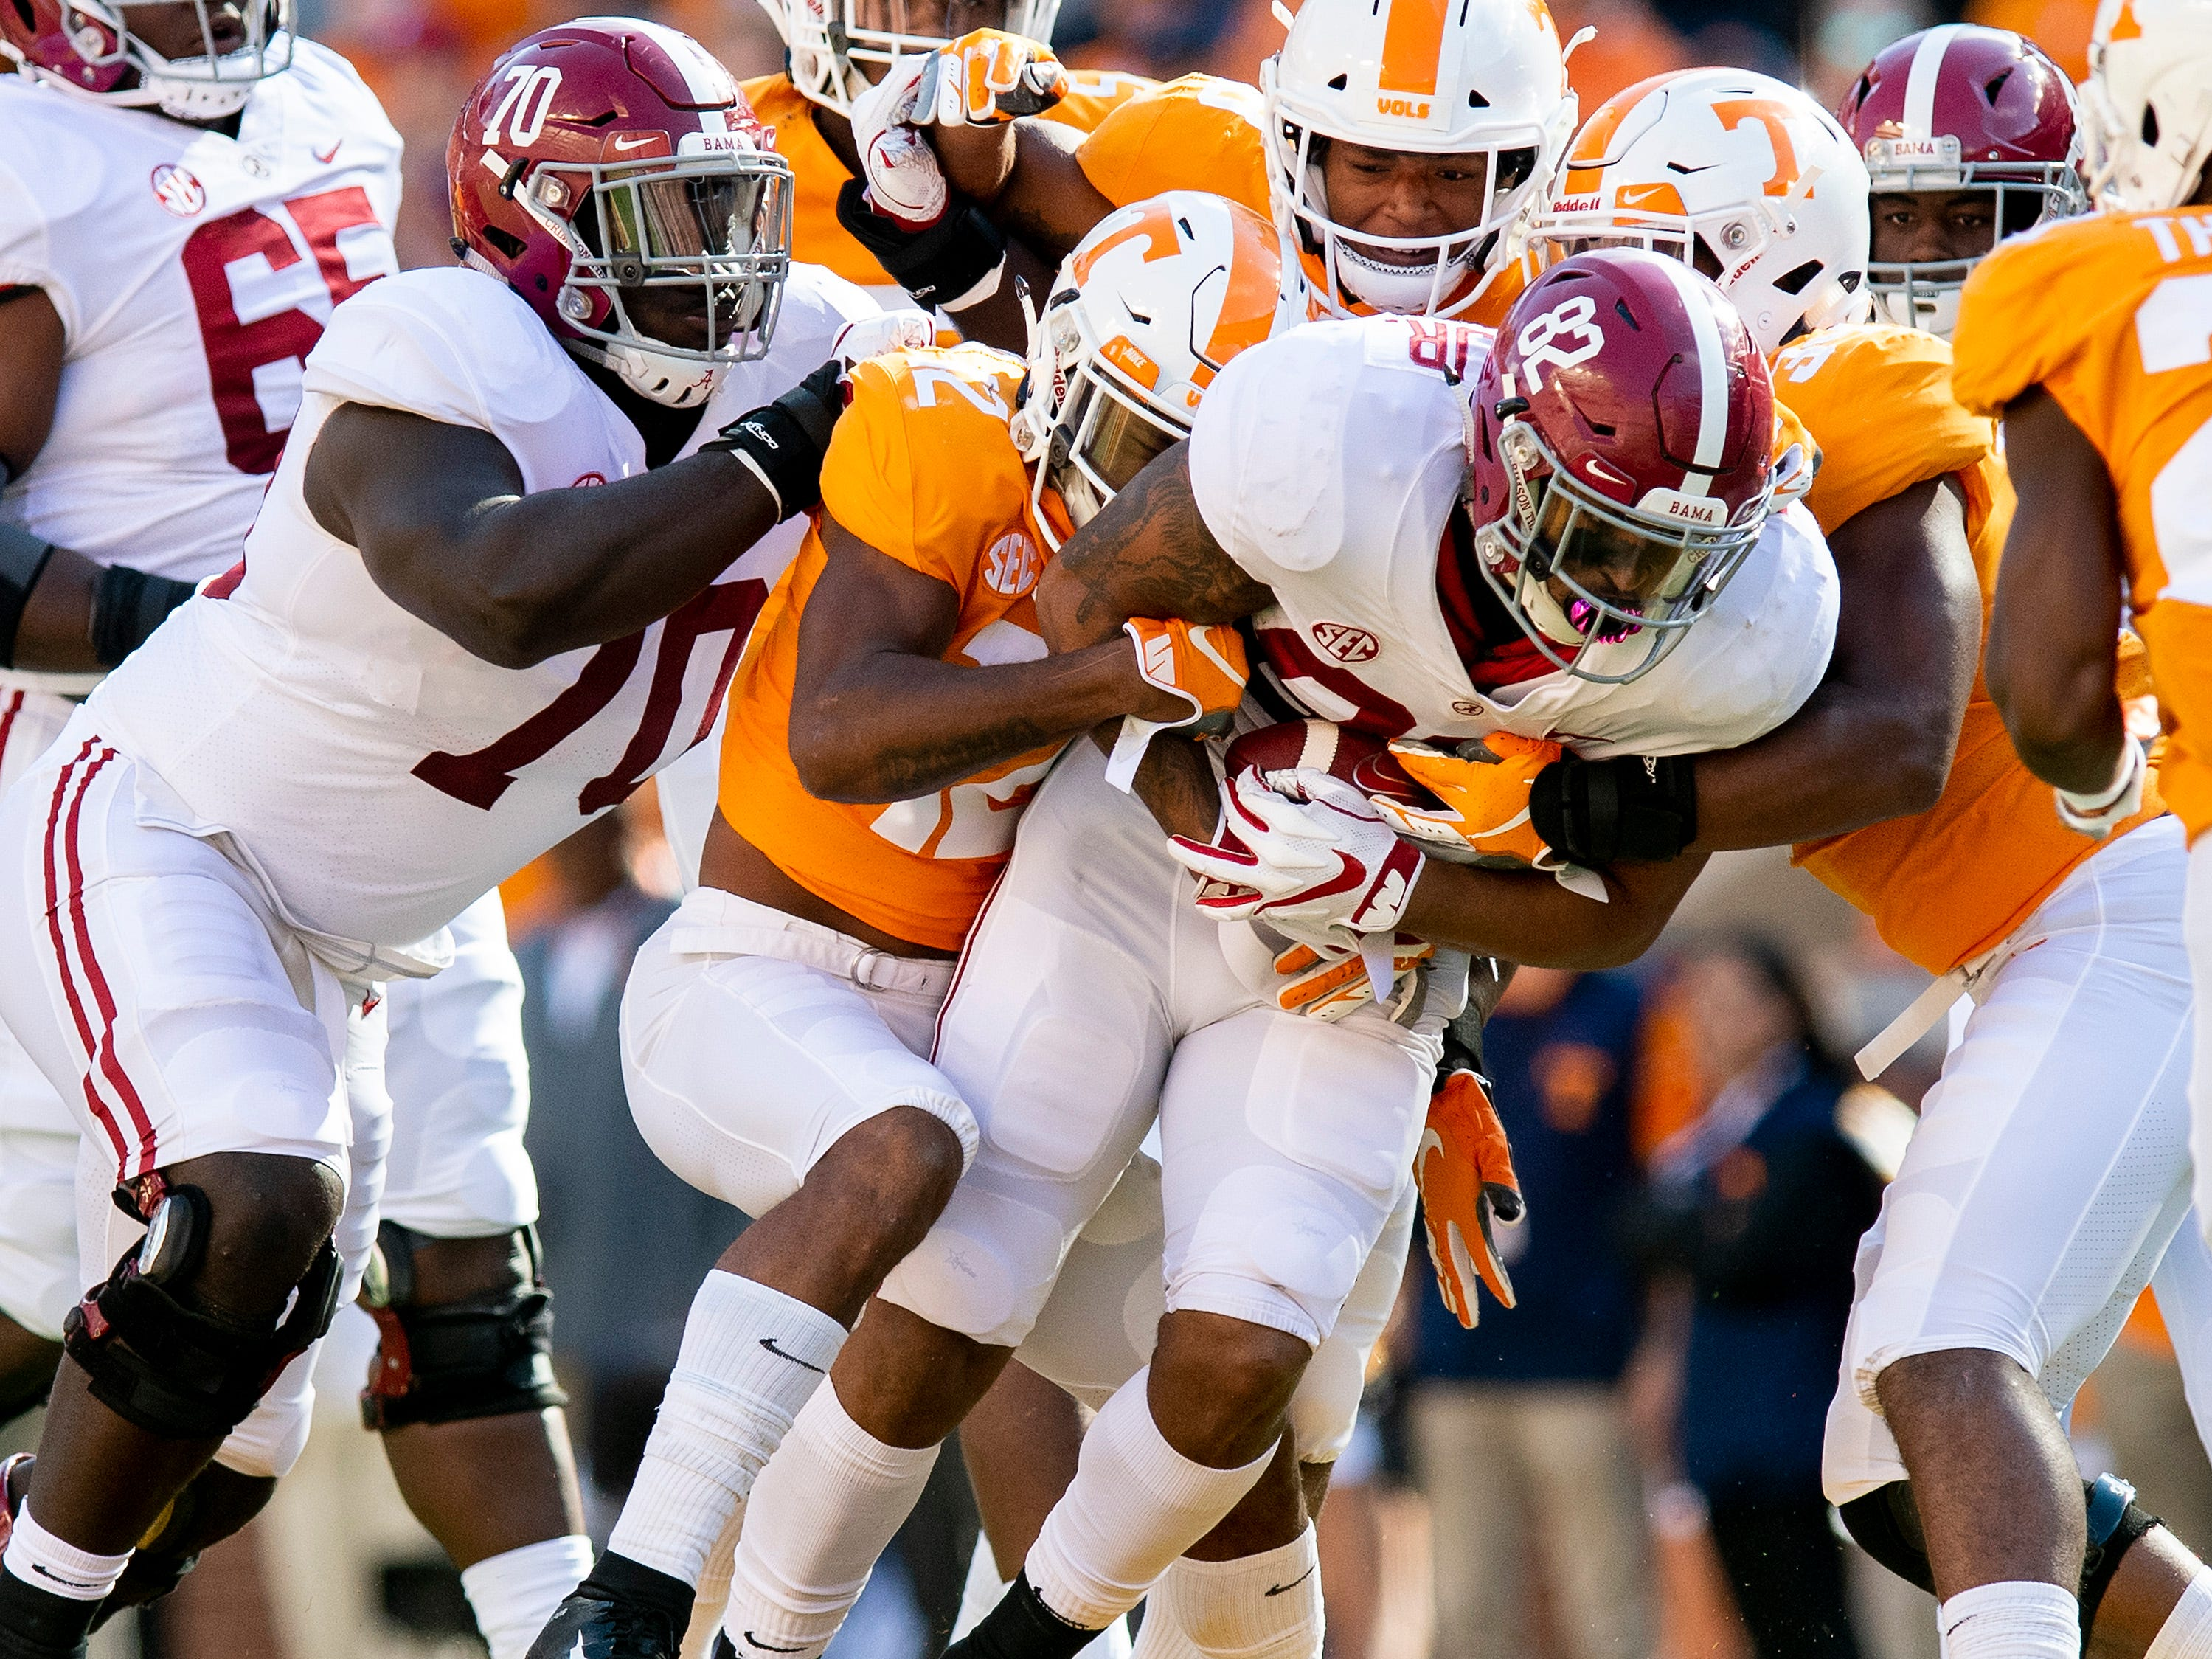 Alabama tight end Irv Smith Jr. (82) is gang tackled after a catch against Tennessee in first half action at Neyland Stadium in Knoxville, Tn., on Saturday October 20, 2018.